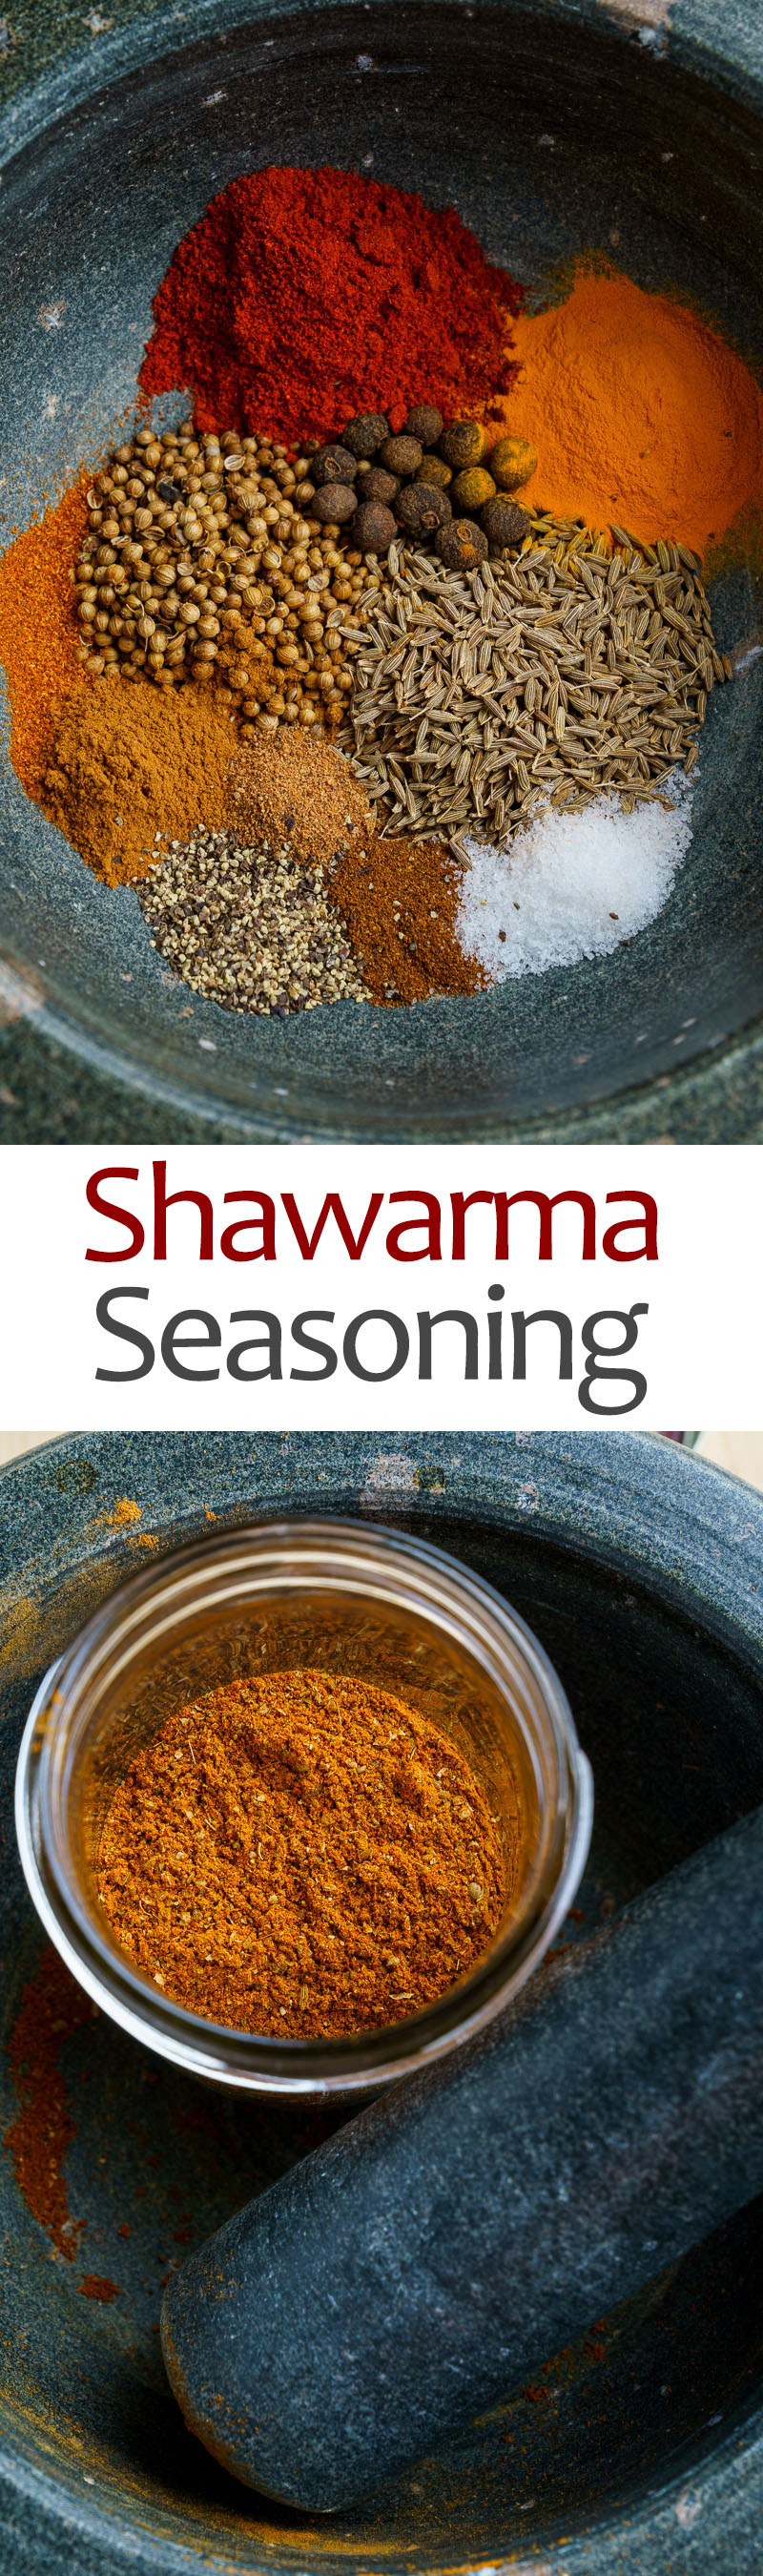 Shawarma Seasoning